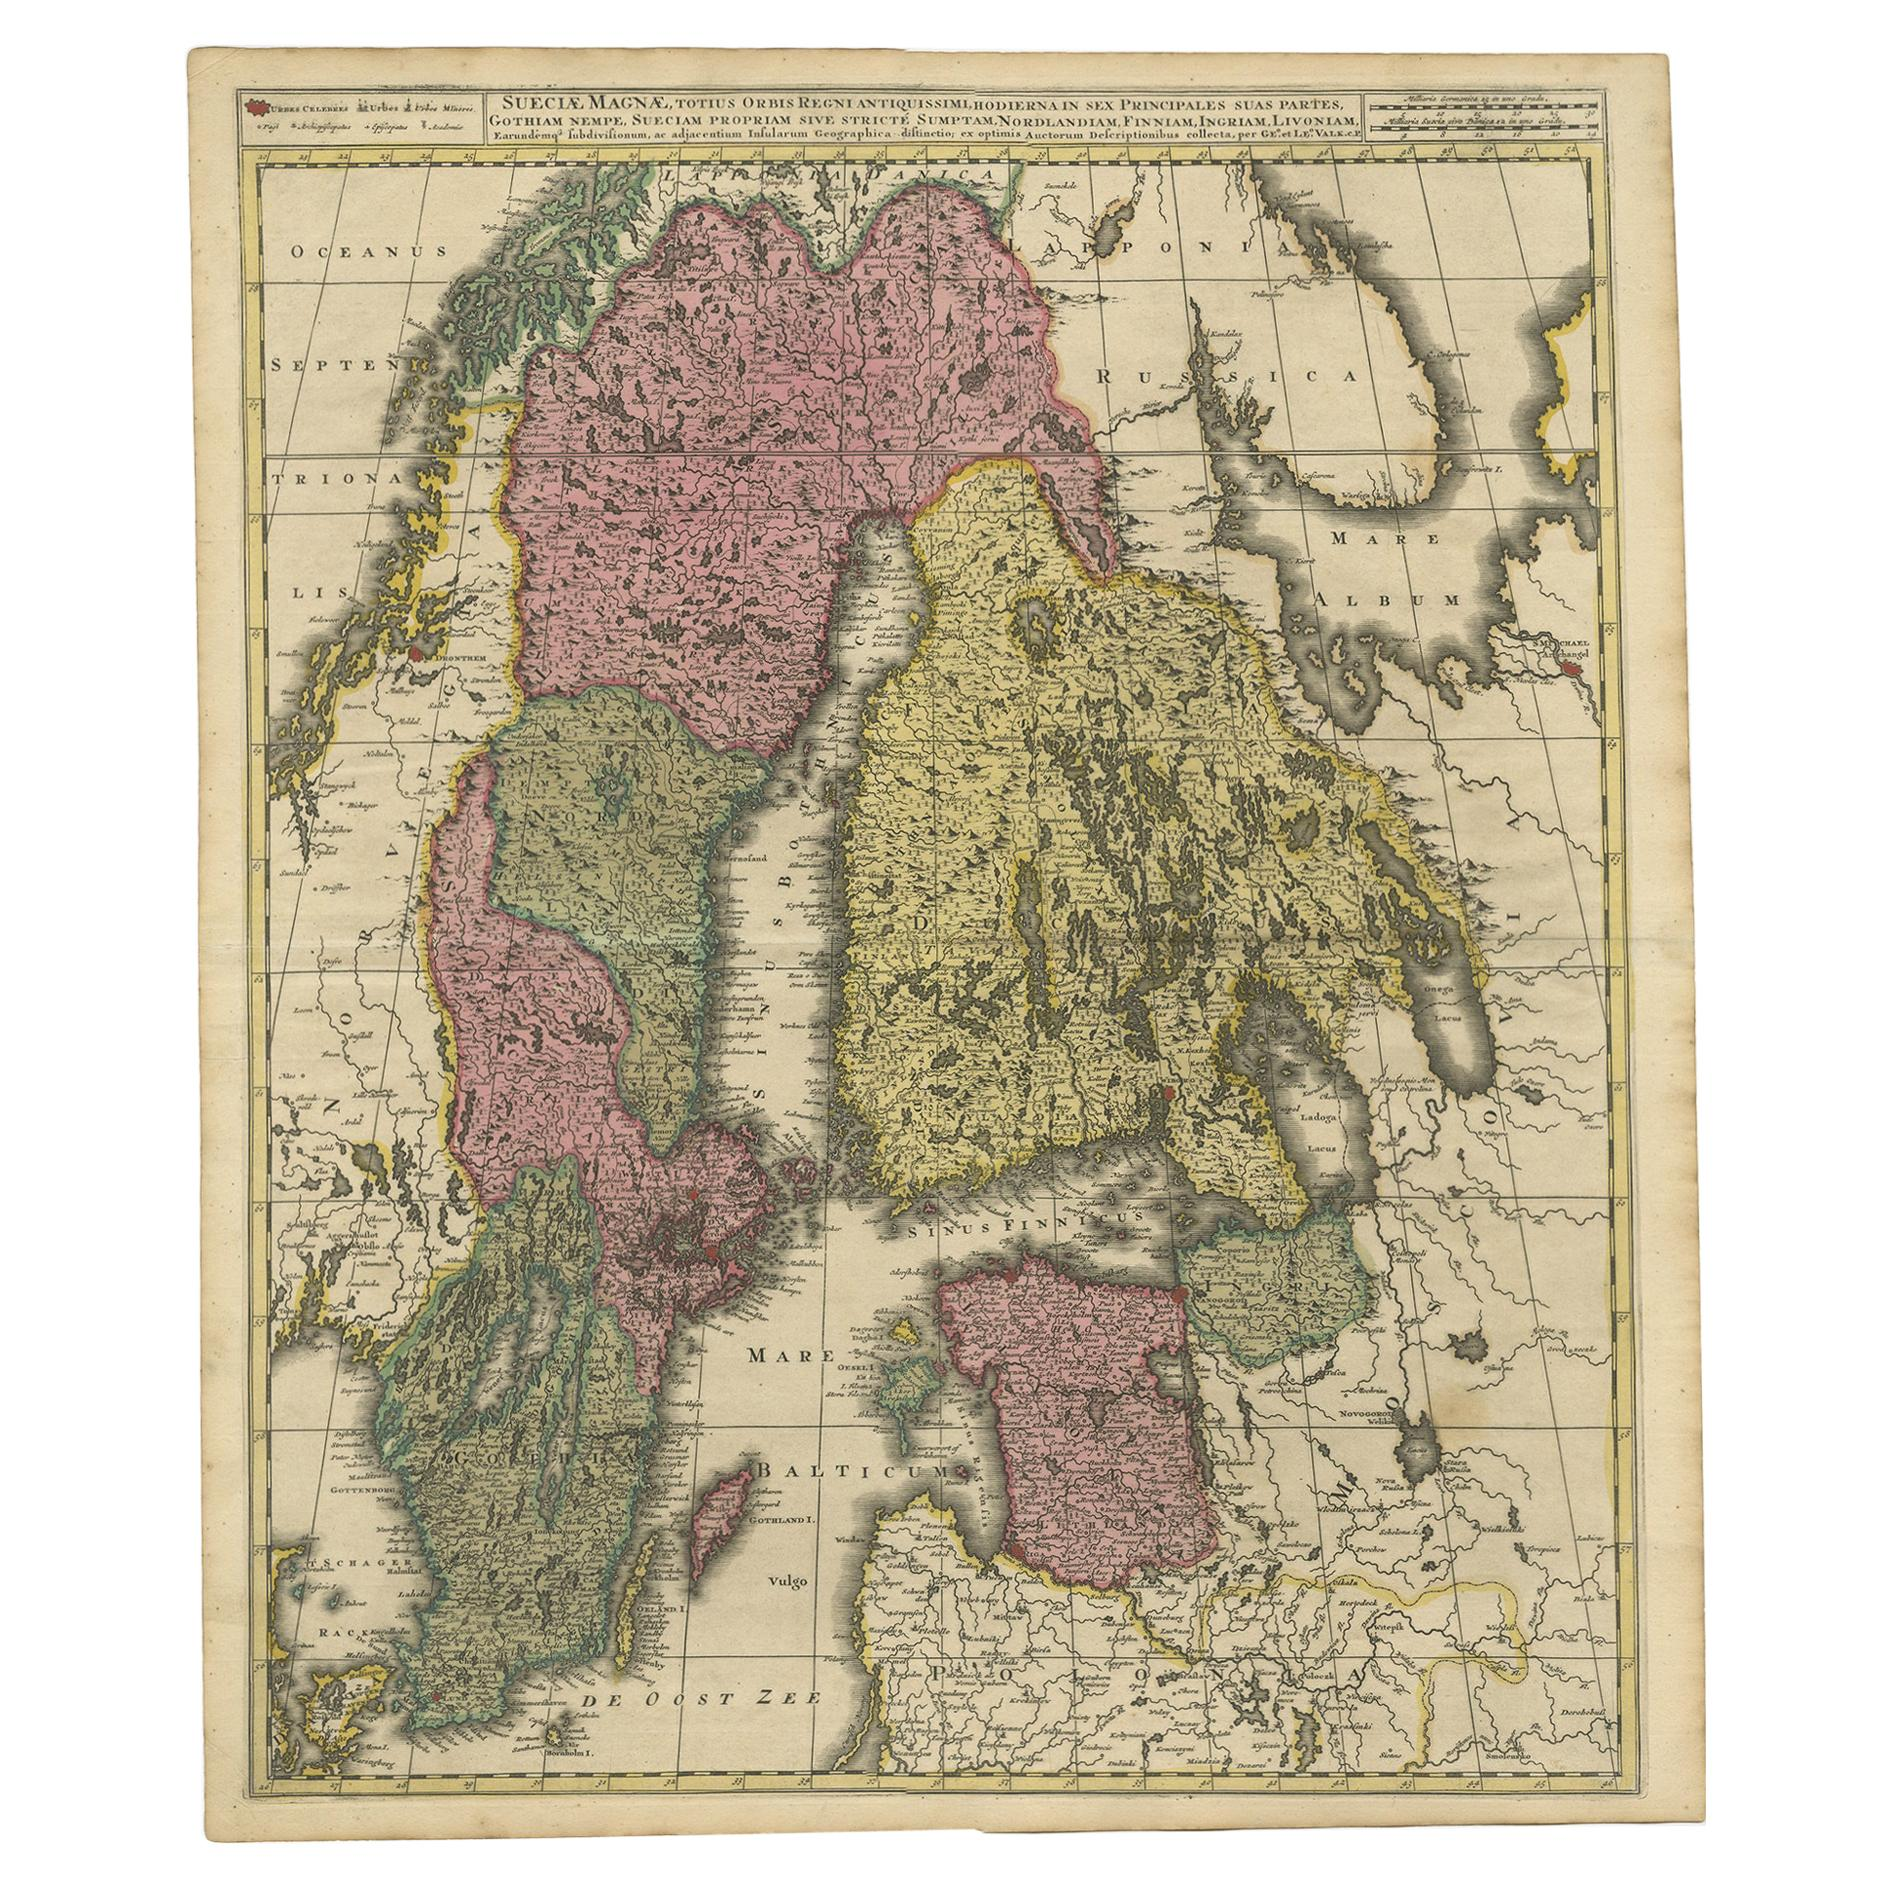 Antique Map of Scandinavia and the Baltic Region by Valk, circa 1690